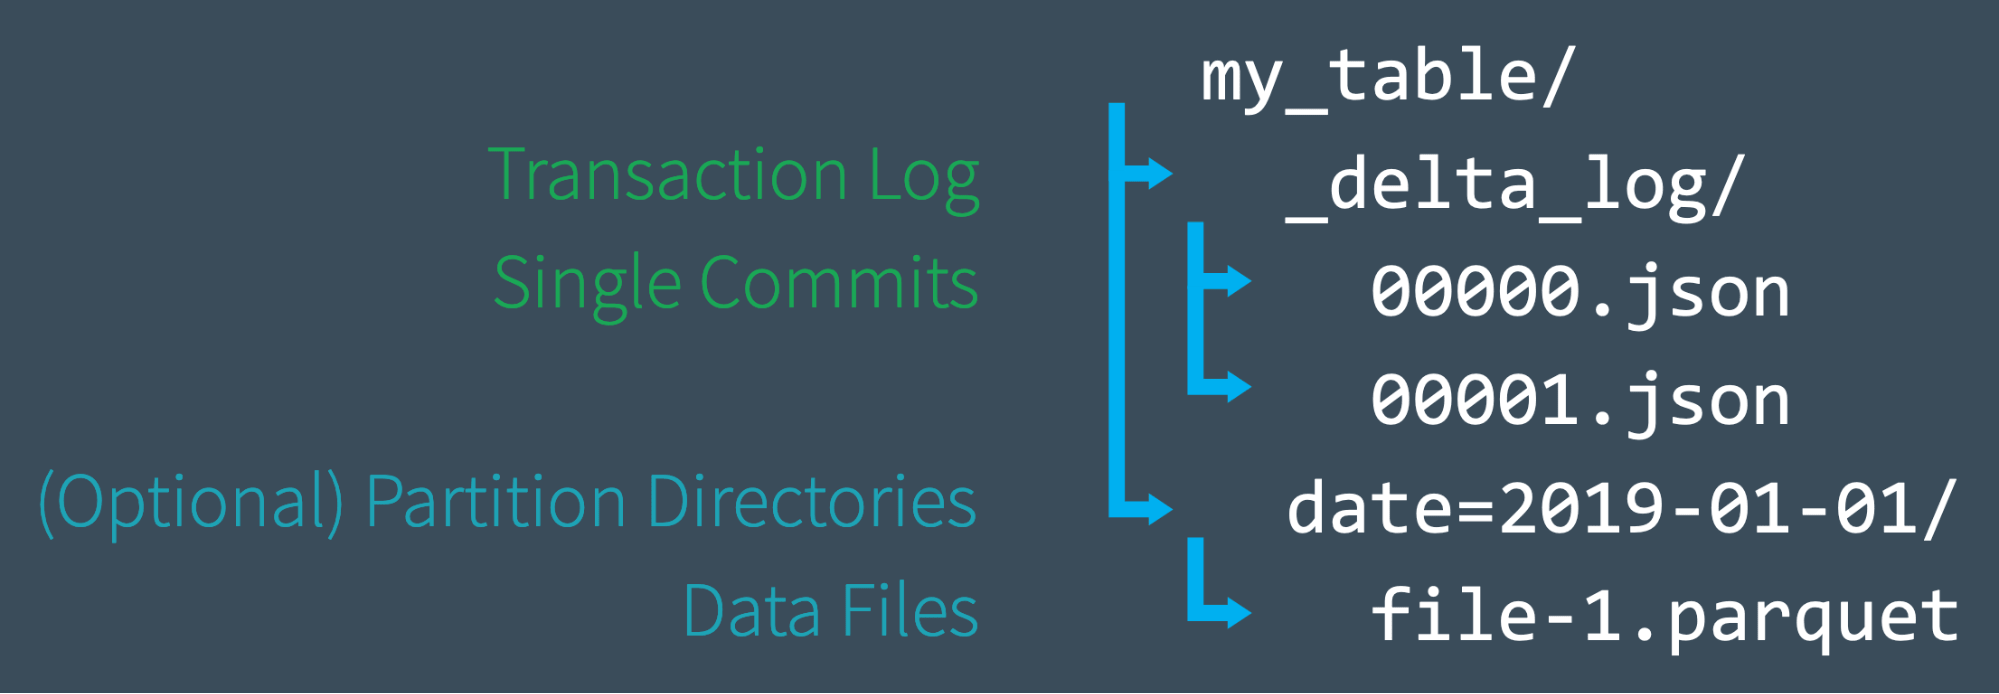 Diagram of the Delta Lake Transaction Log file structure.